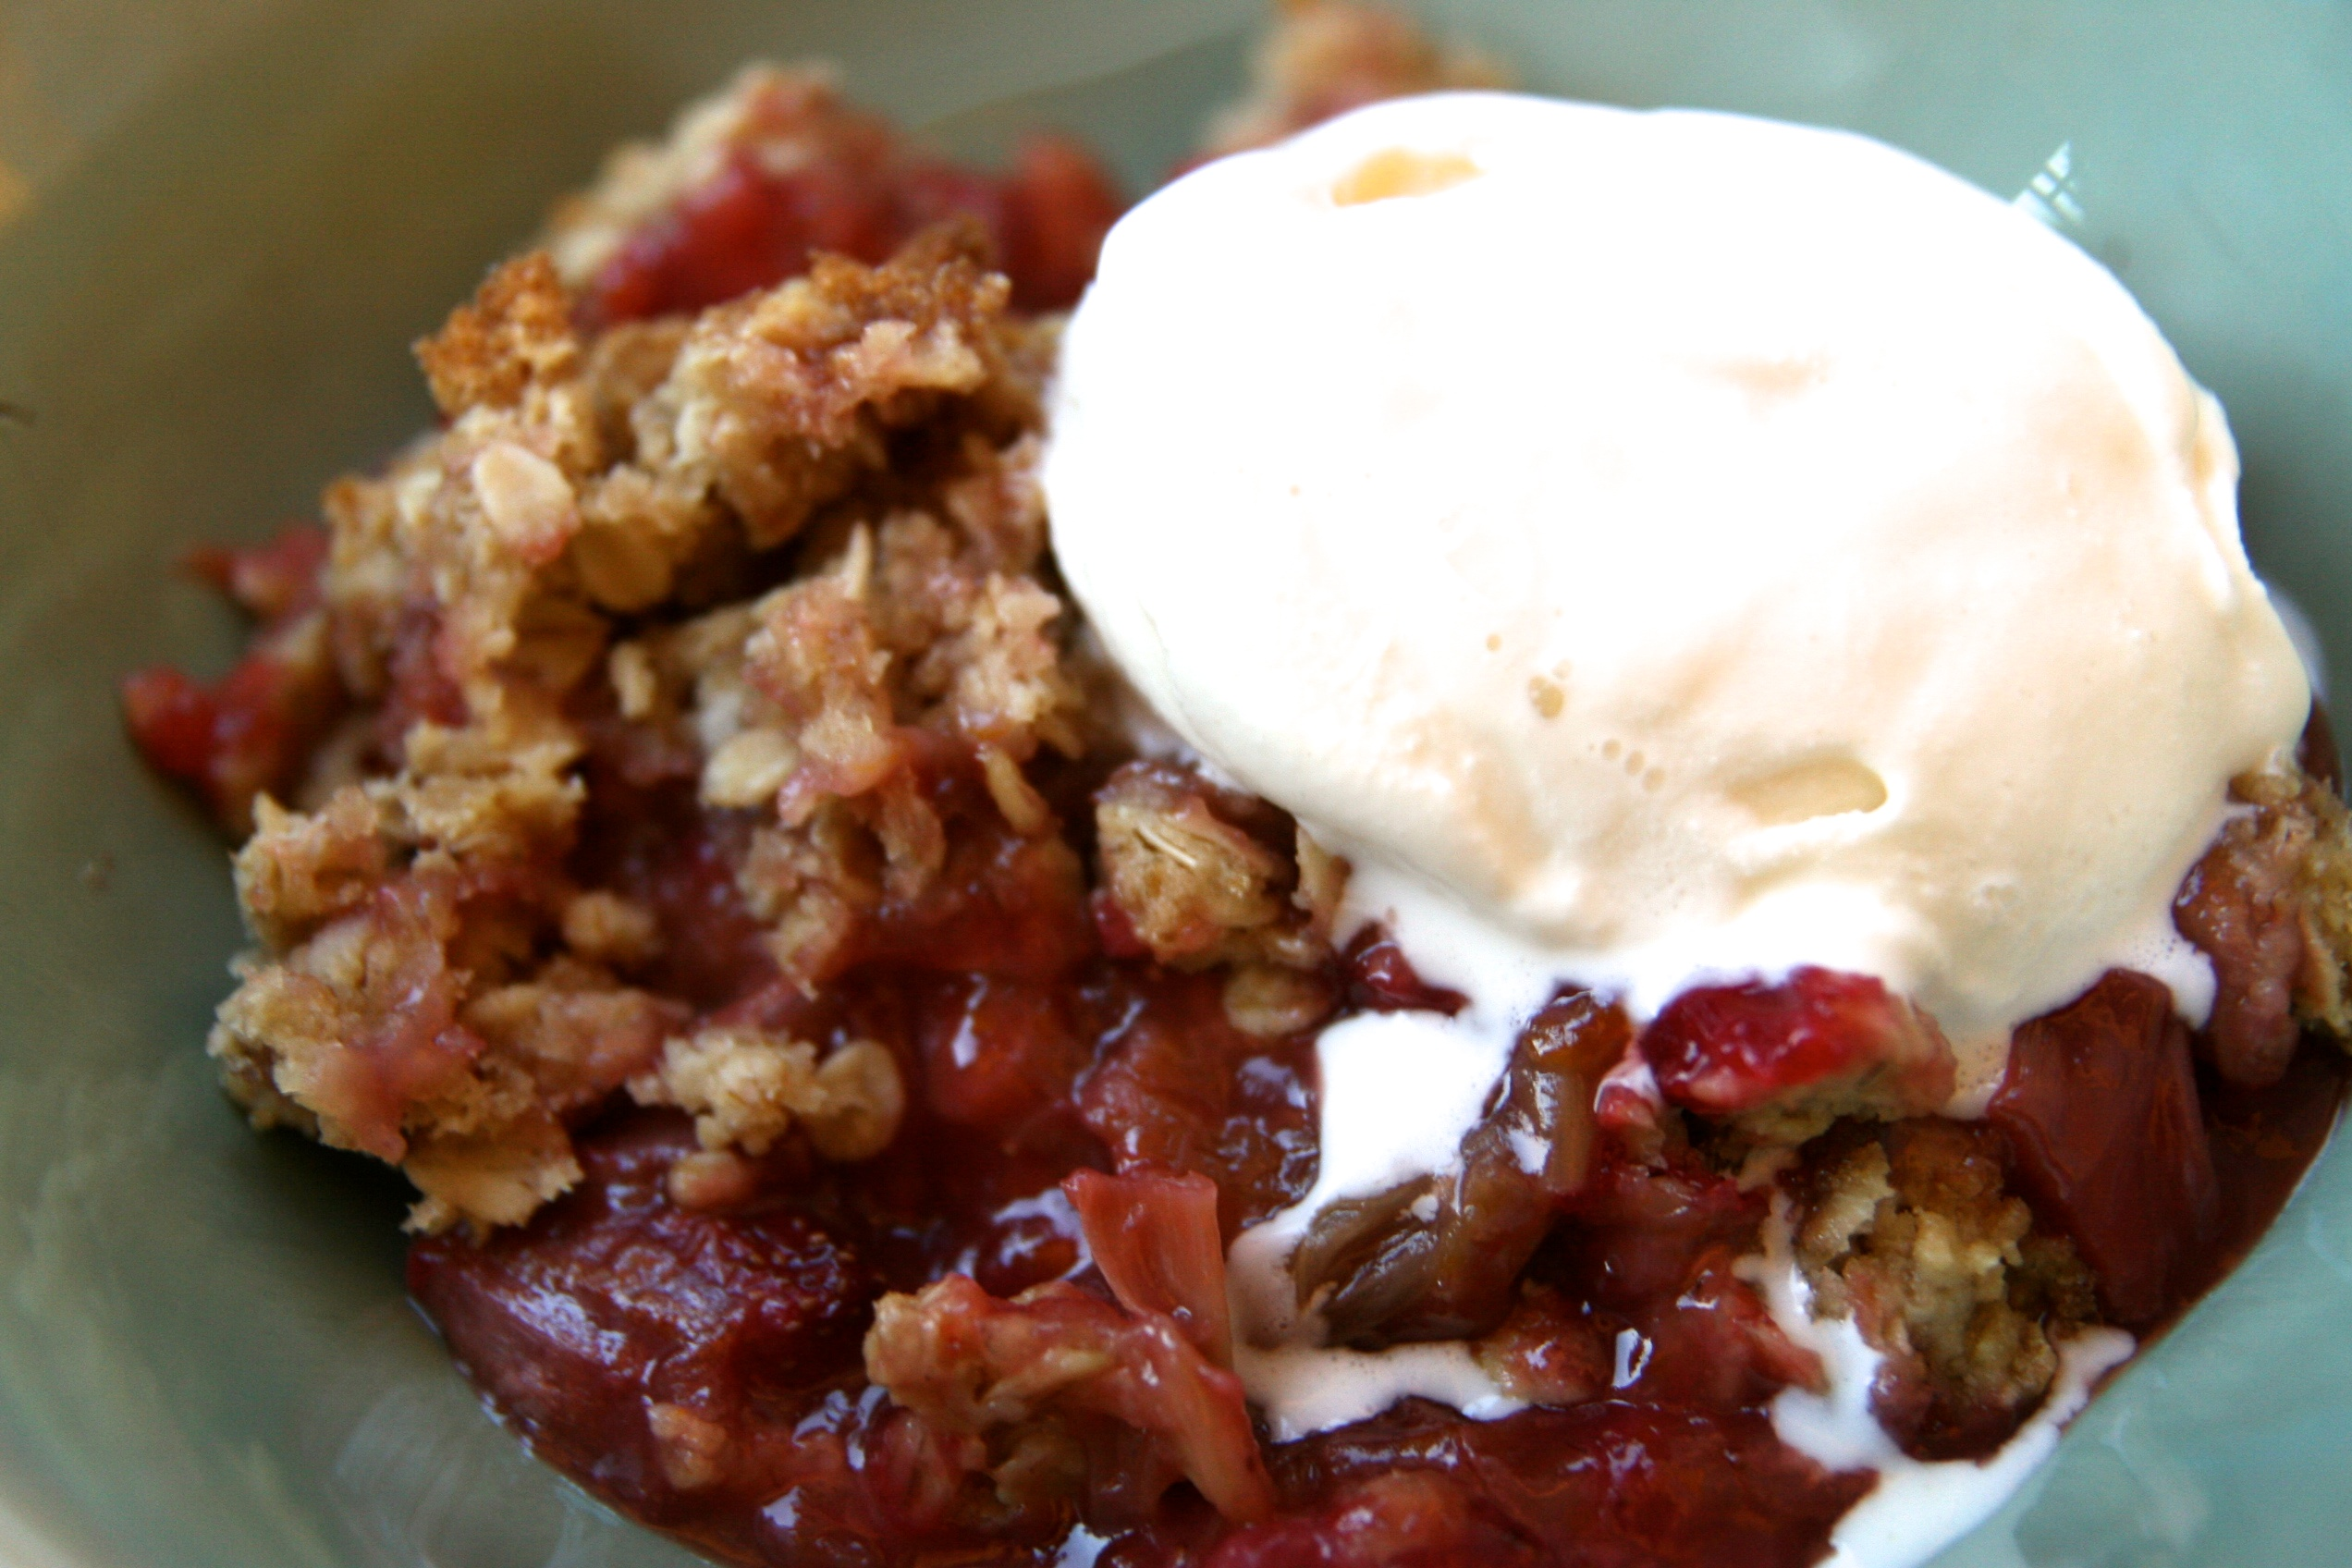 Rhubarb Strawberry Crumble